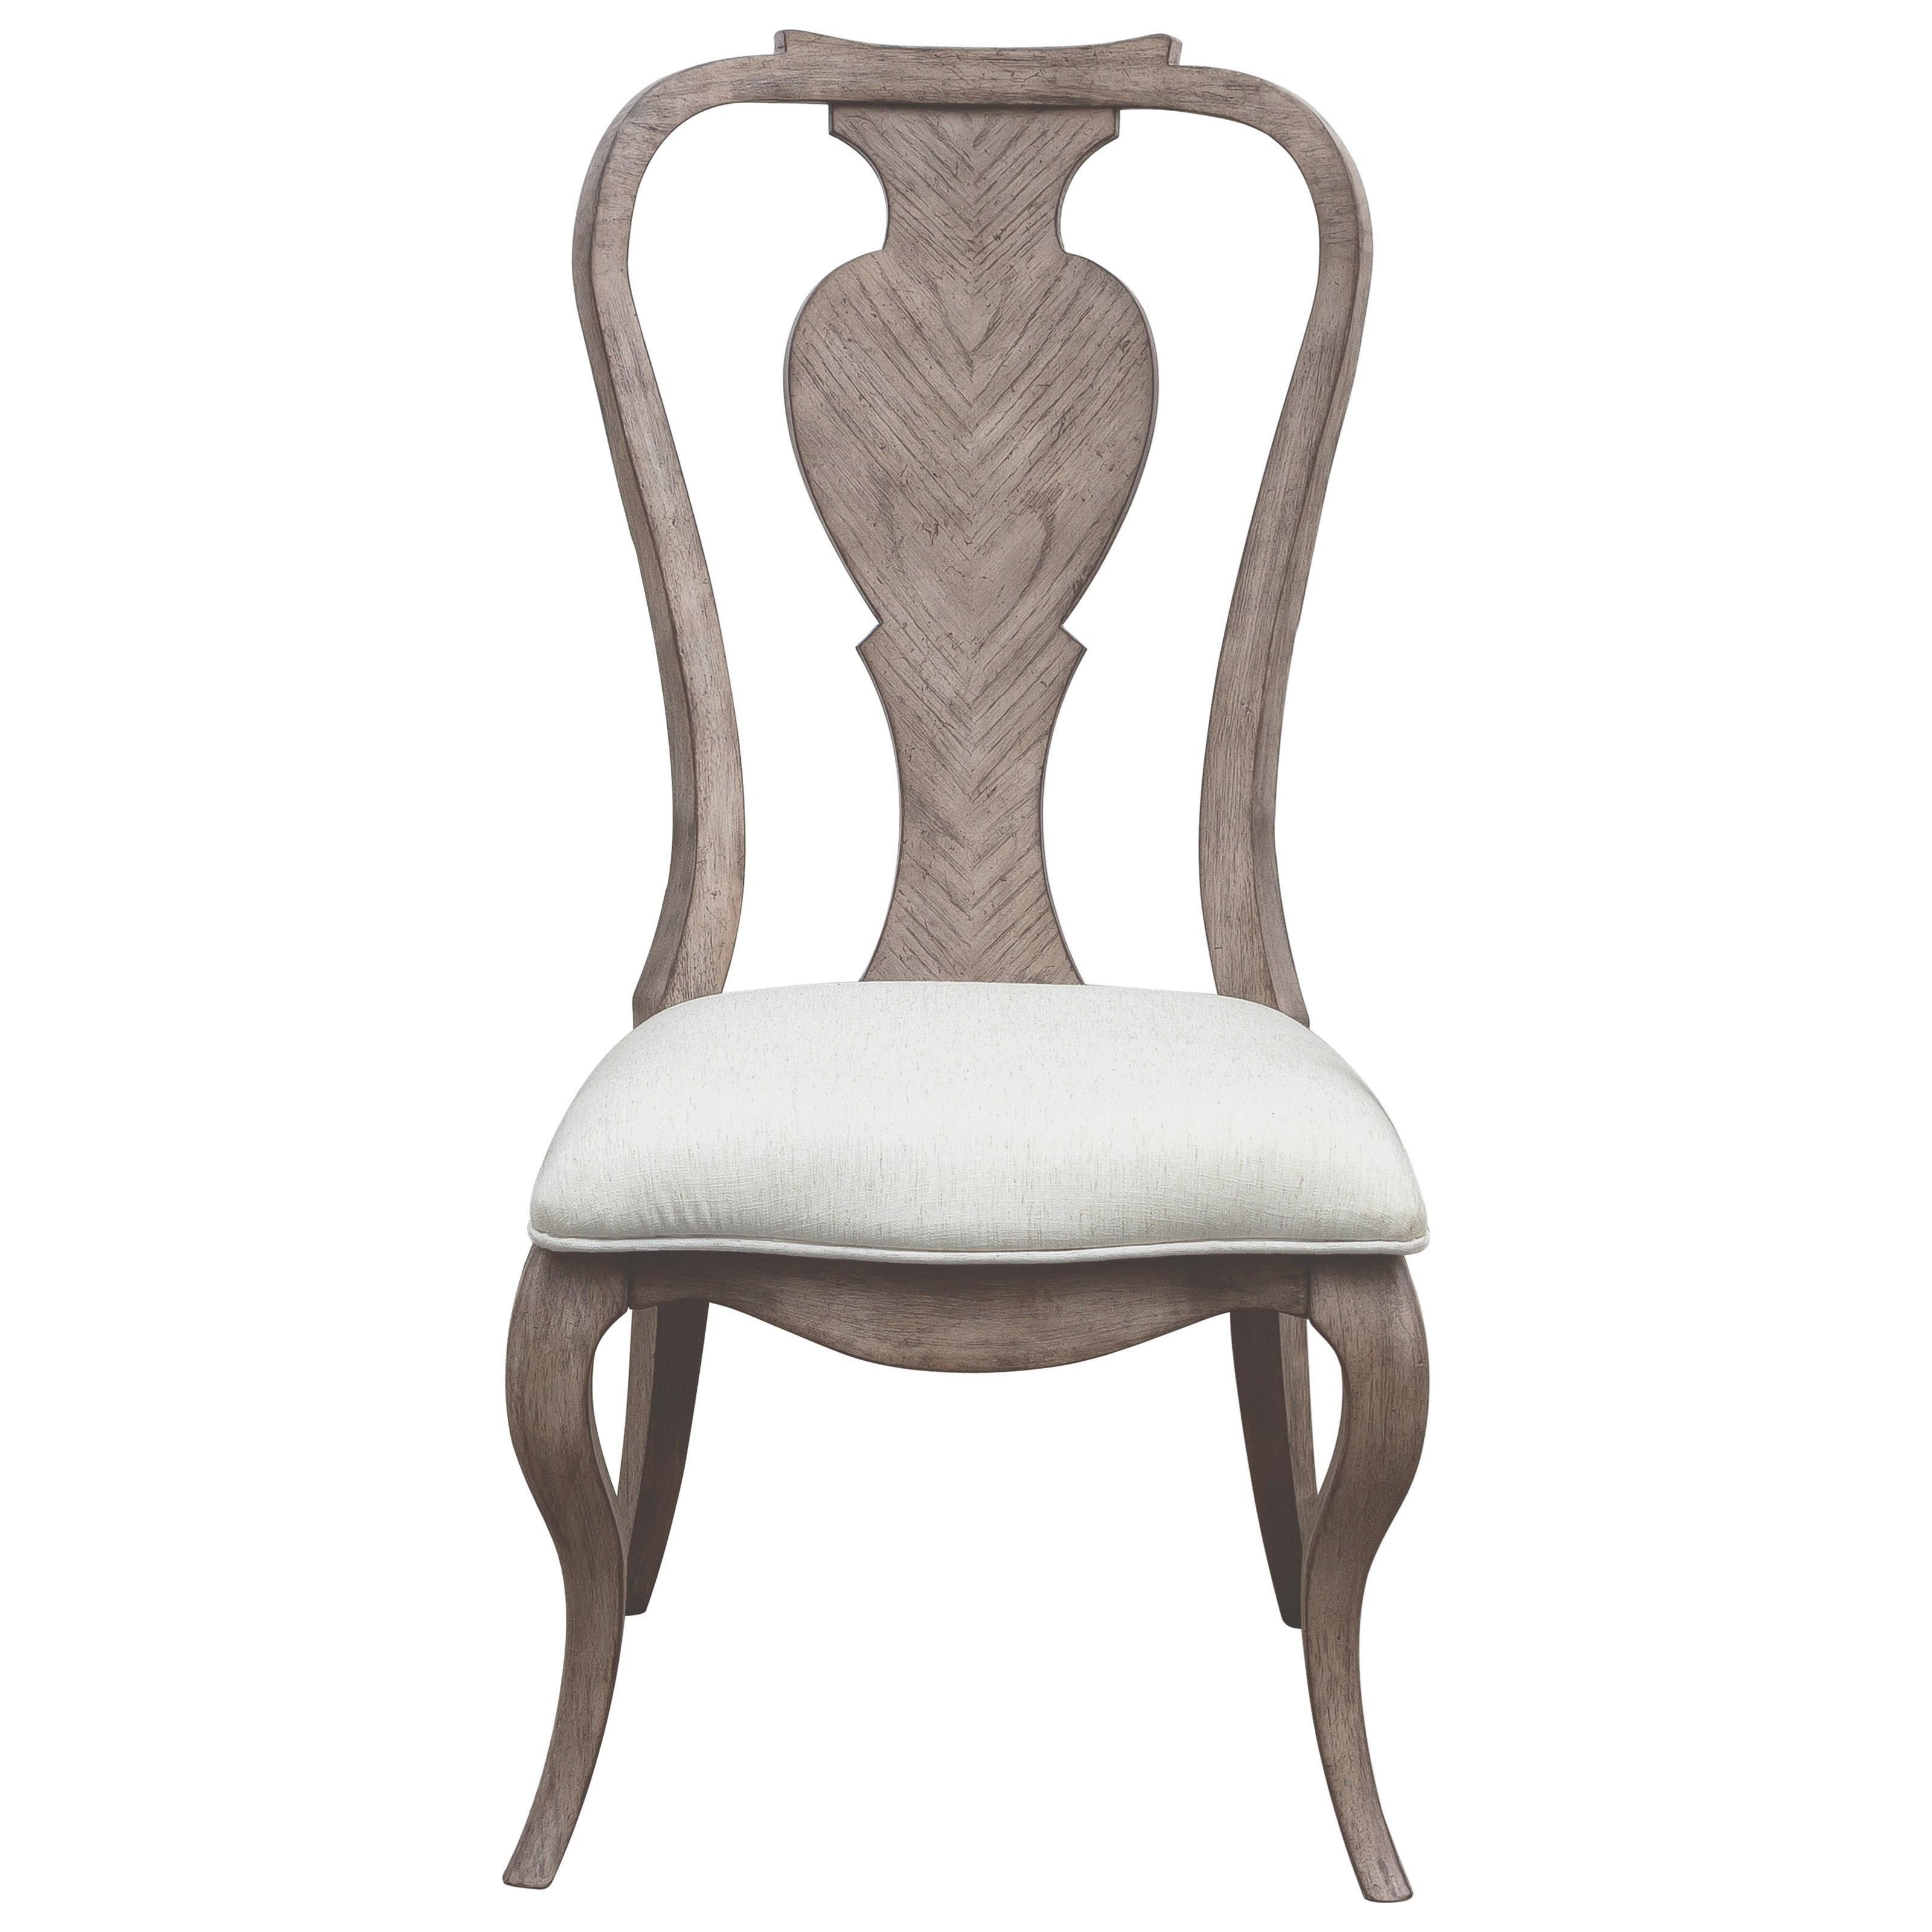 Pulaski Furniture Ella P221260 Traditional Splat Back Side Chair With Upholstered Seat Upper Room Home Furnishings Dining Side Chairs